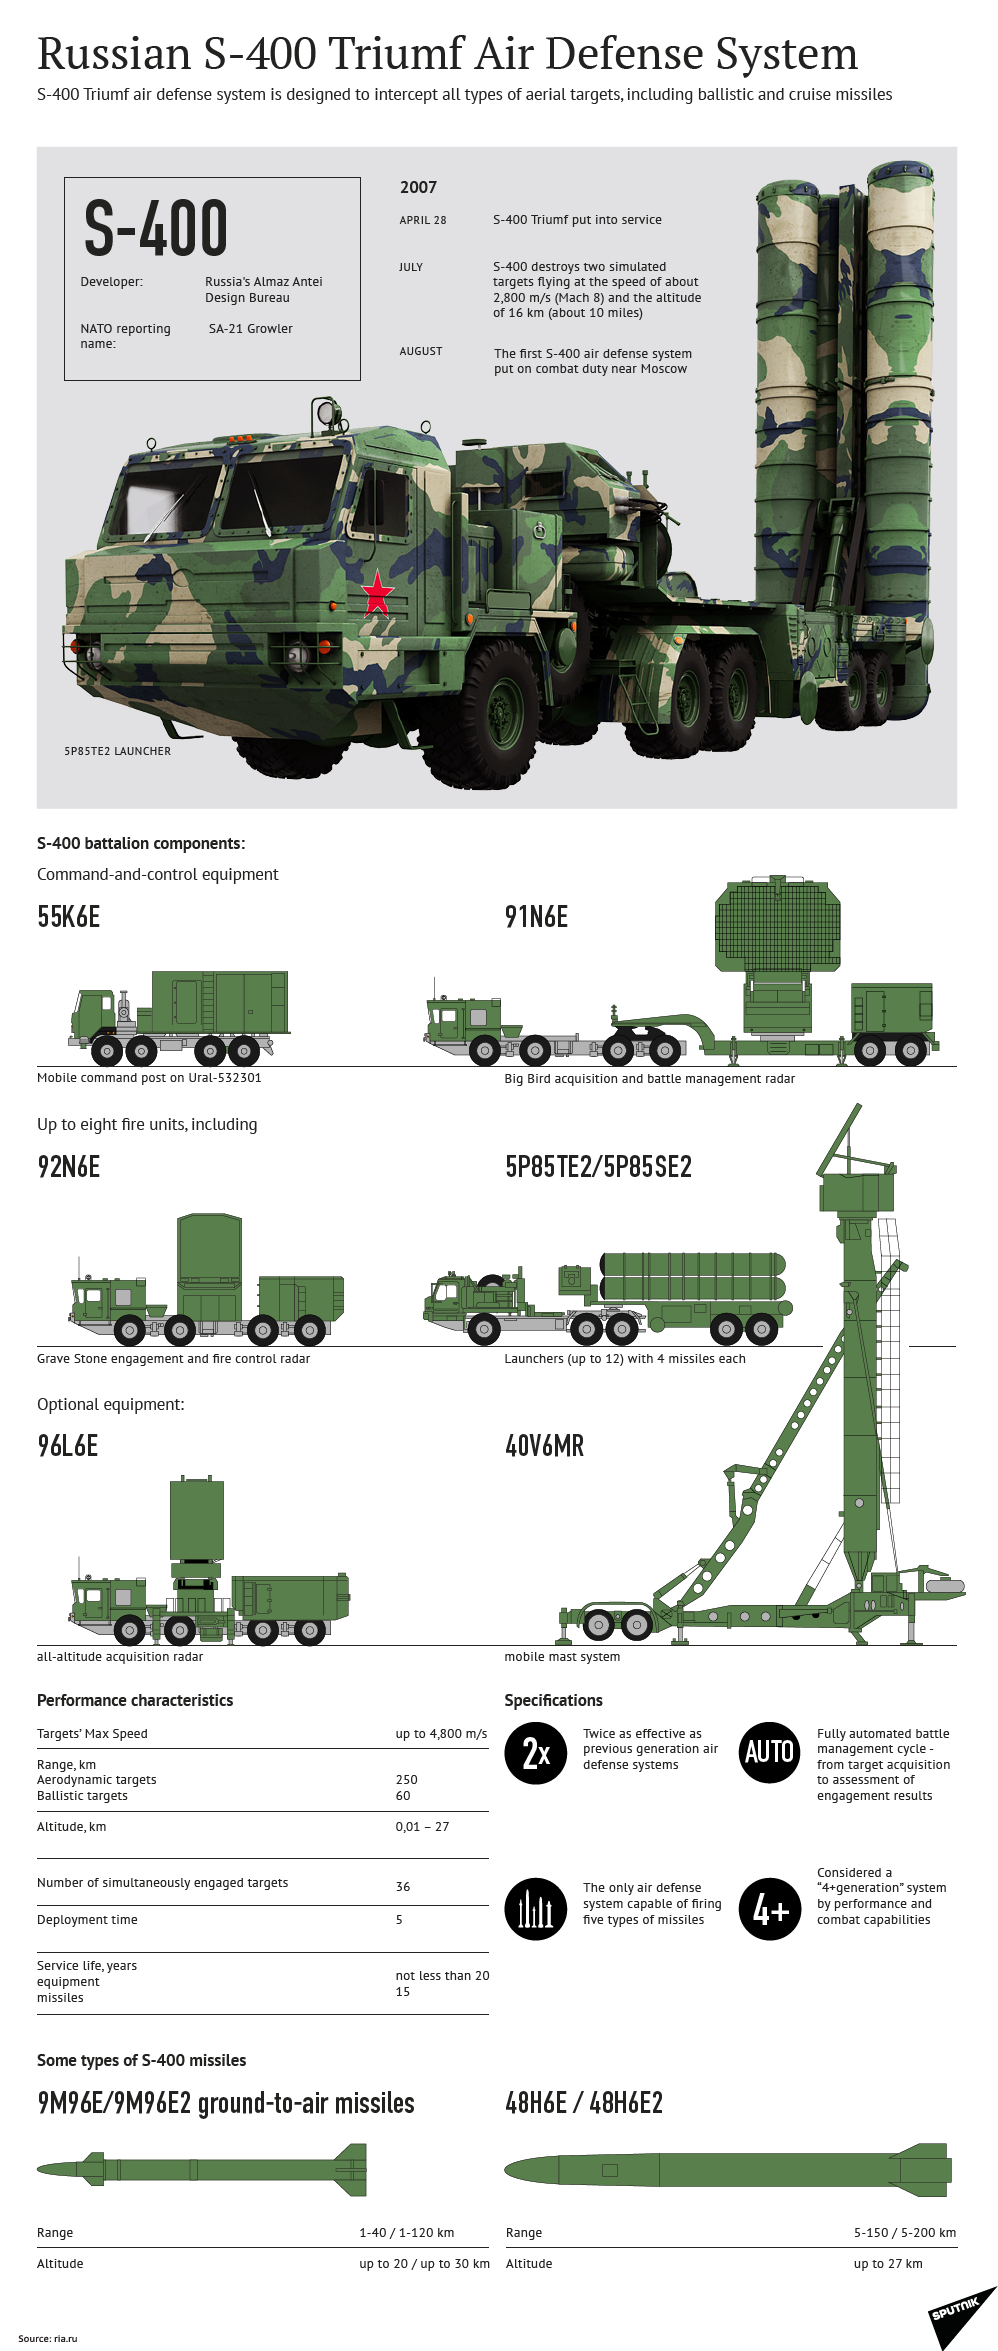 Russian S-400 Triumf Air Defense System